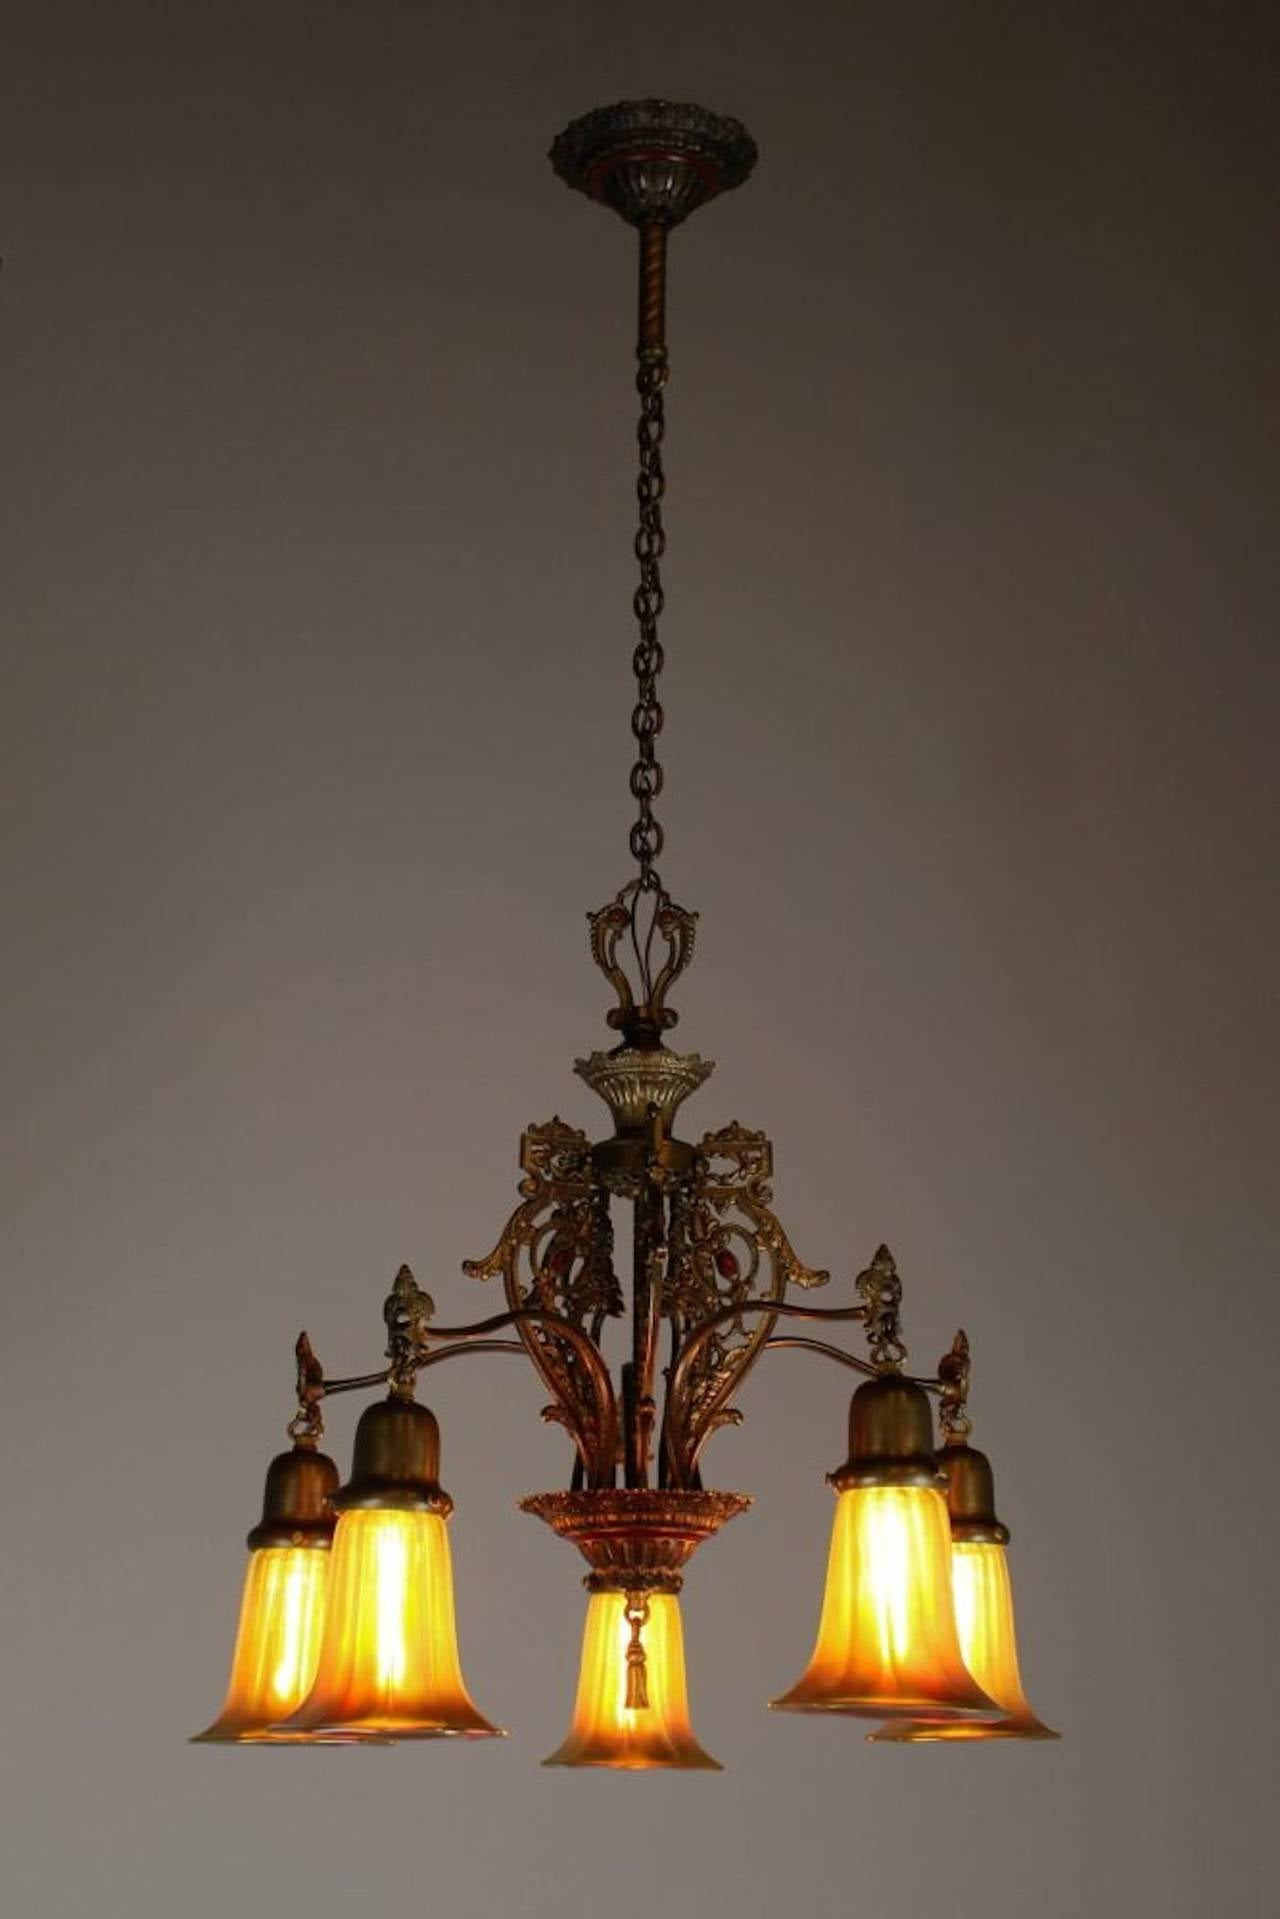 spanish colonial revival five light fixture with art glass. Black Bedroom Furniture Sets. Home Design Ideas